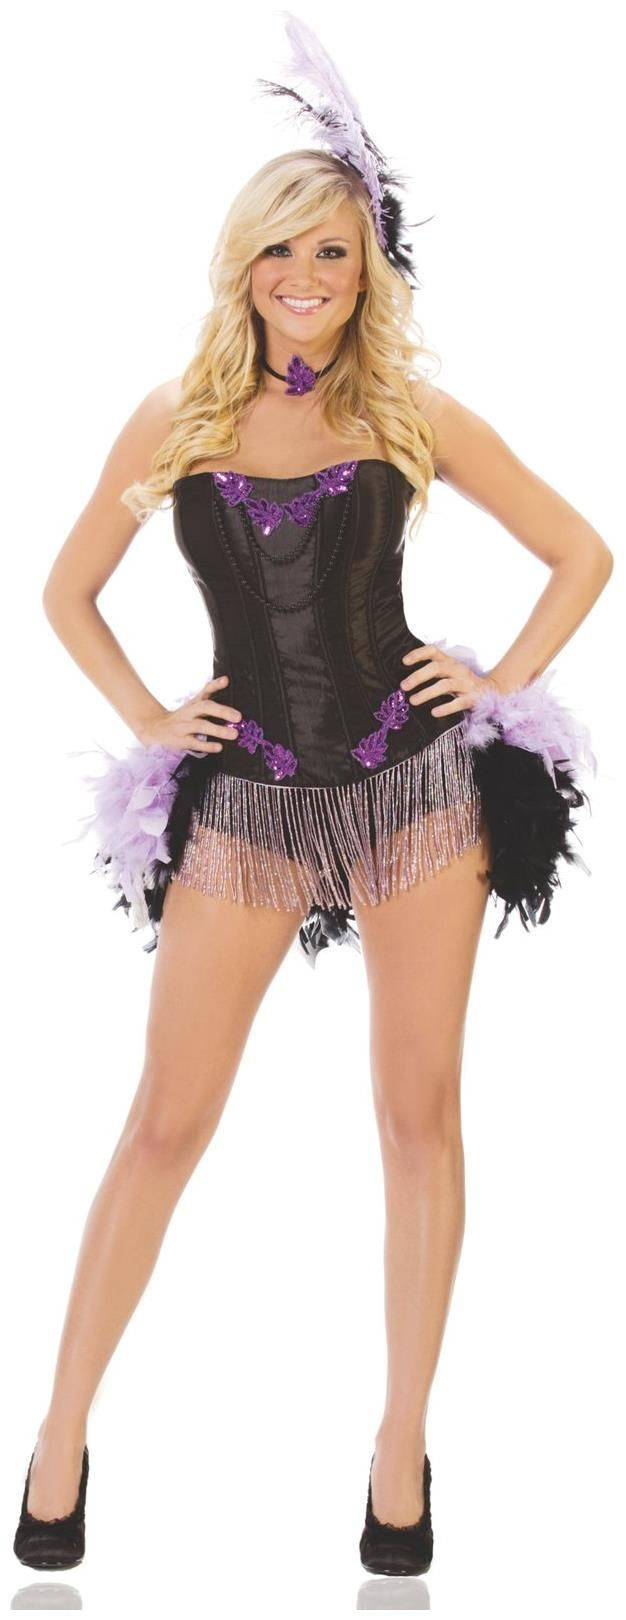 76 best Mardi Gras Costumes, Accessories images on Pinterest